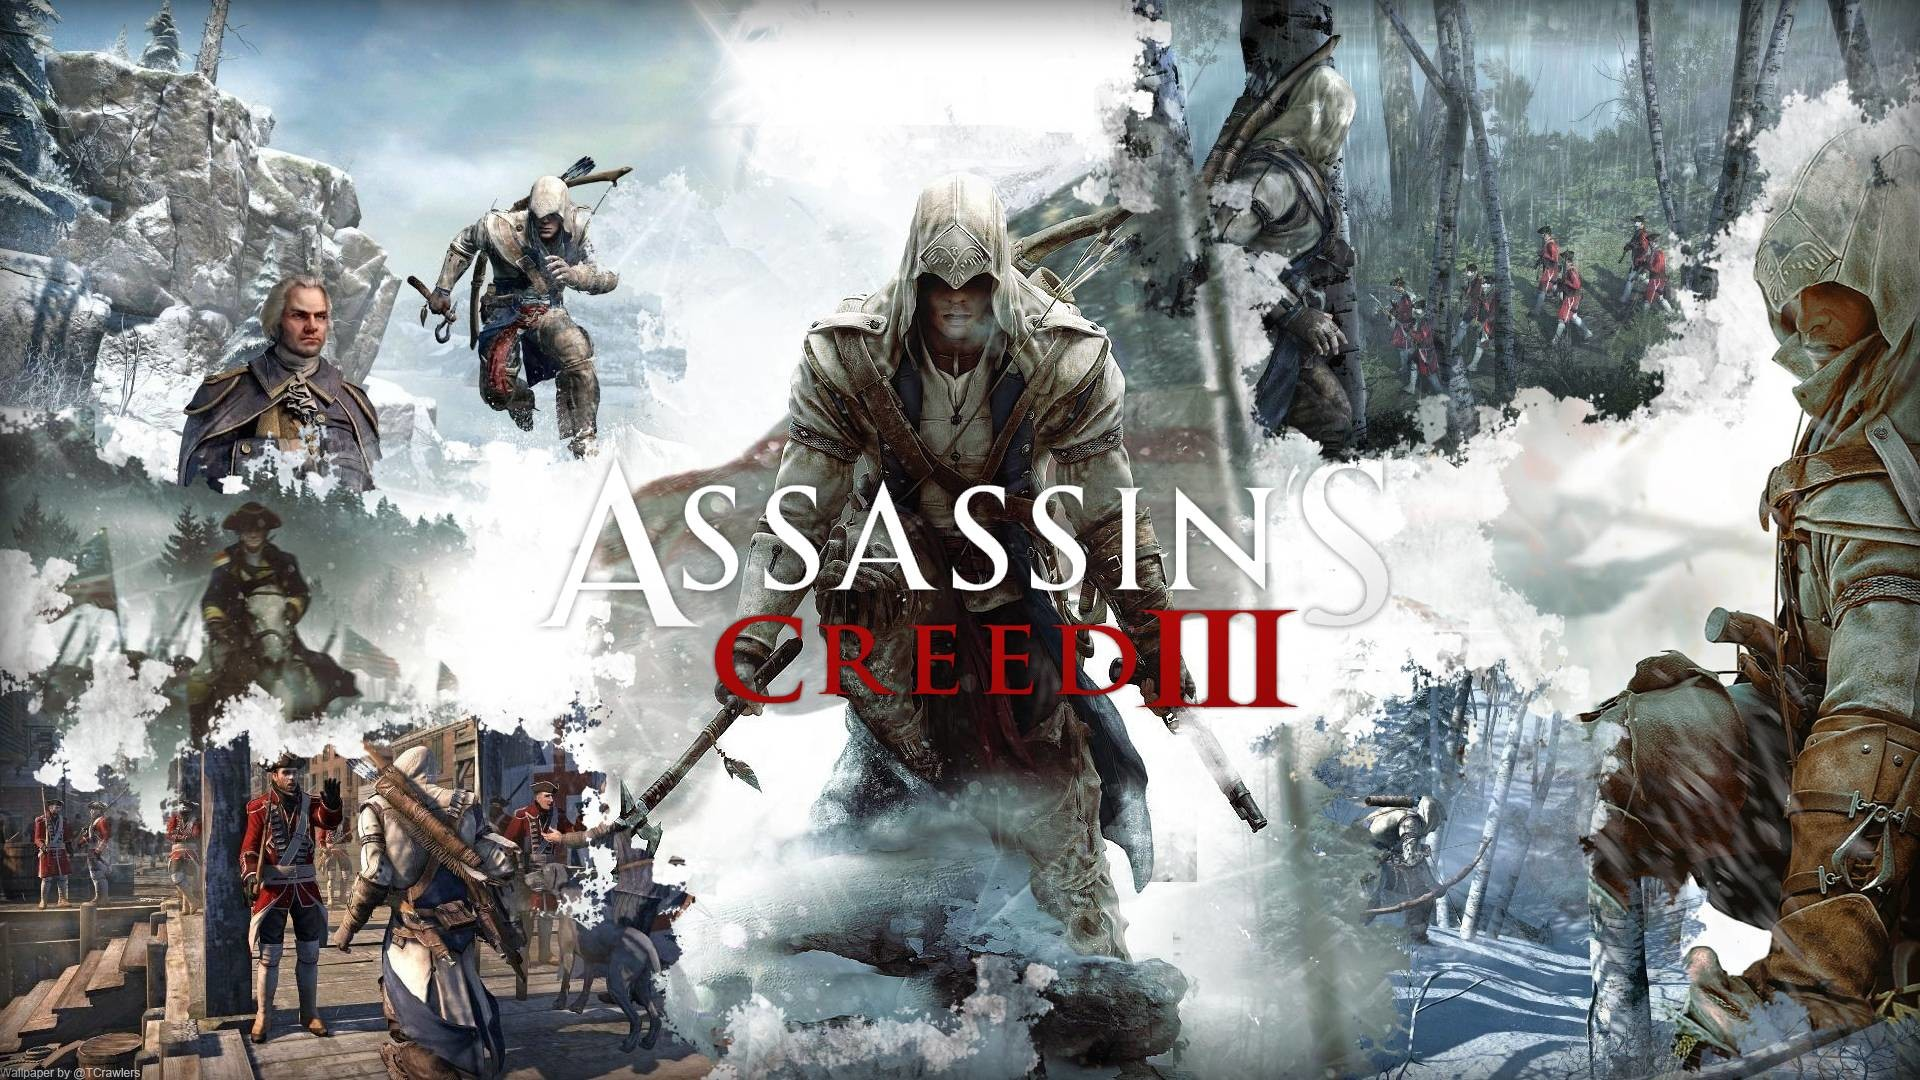 Cool Assassins Creed Wallpapers (74+ images)